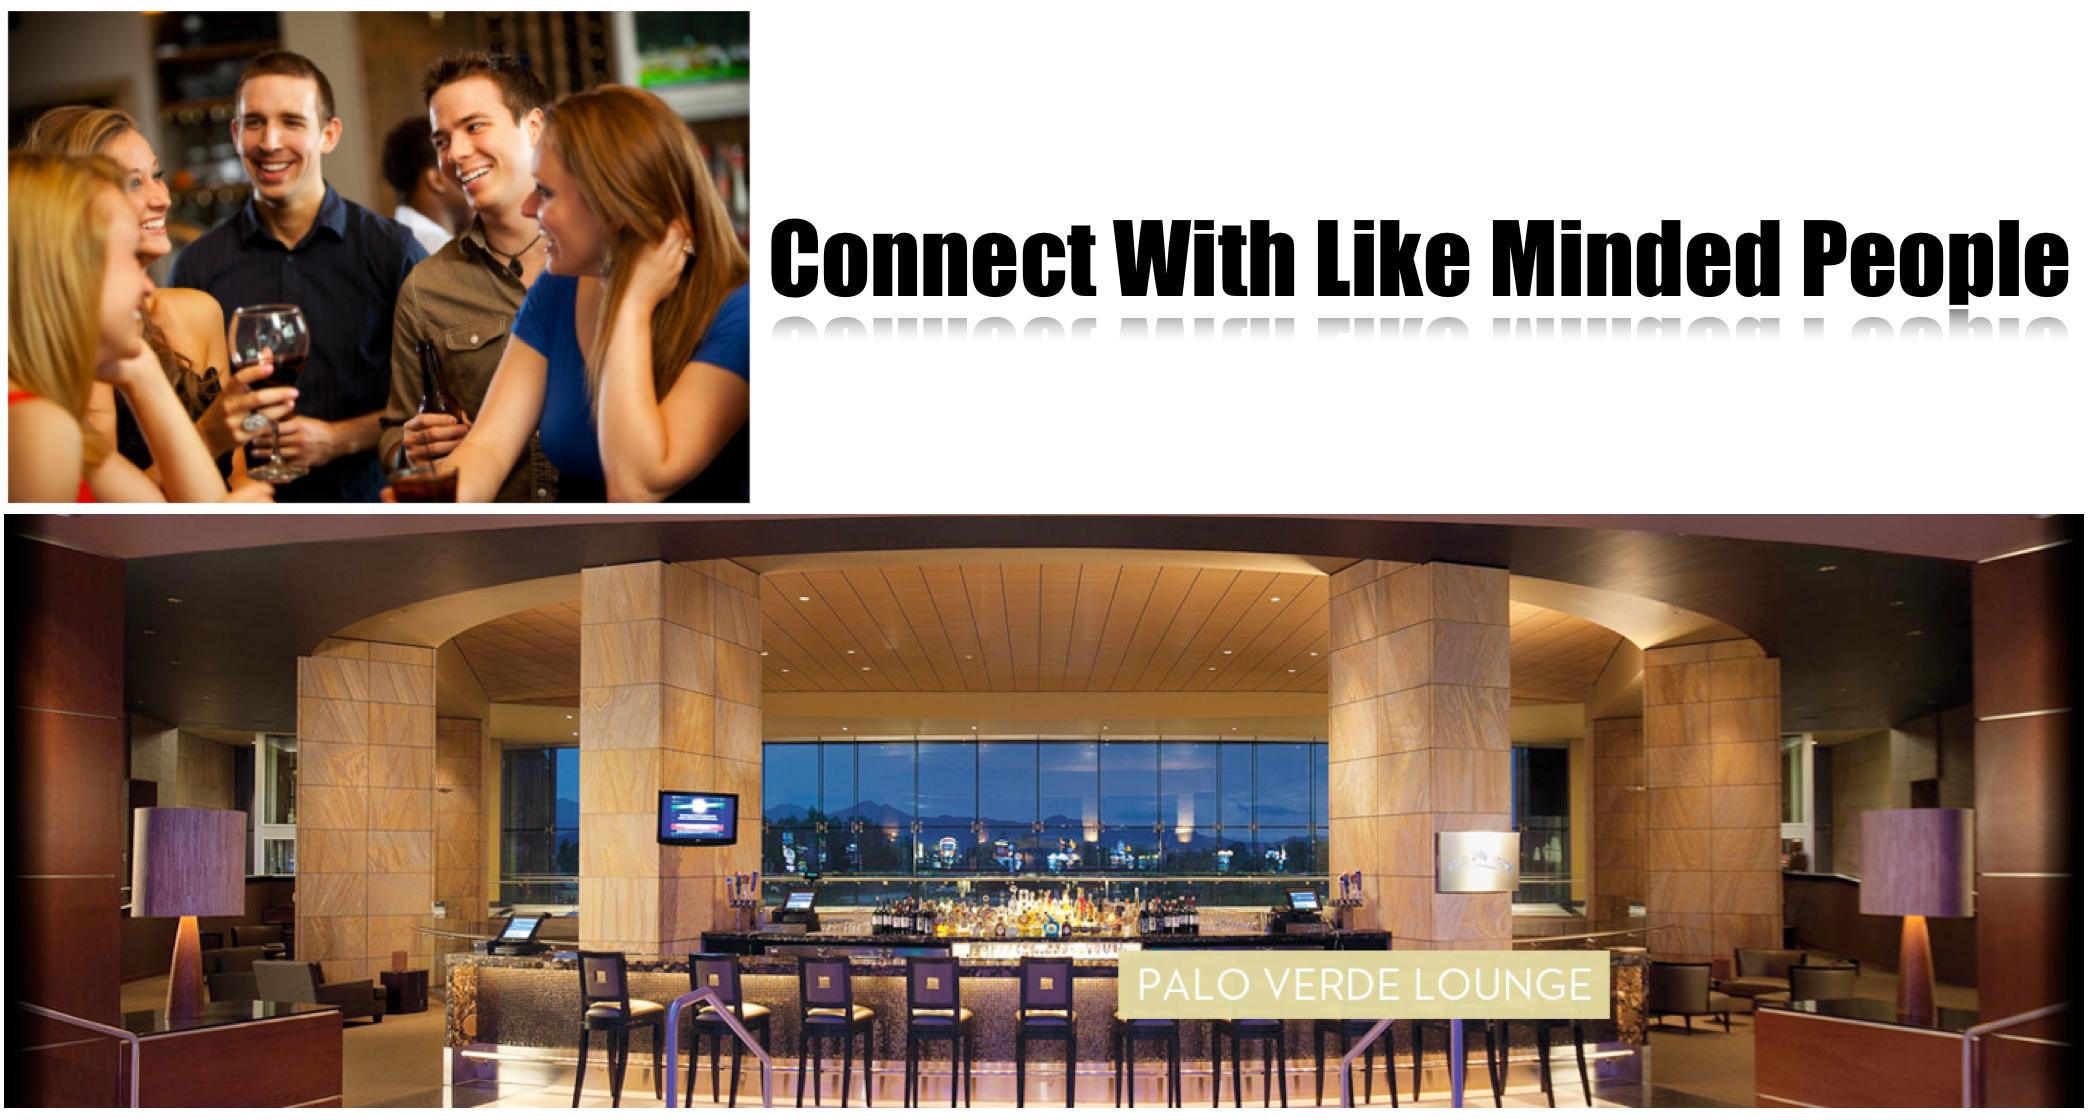 Connect with Like Minded People